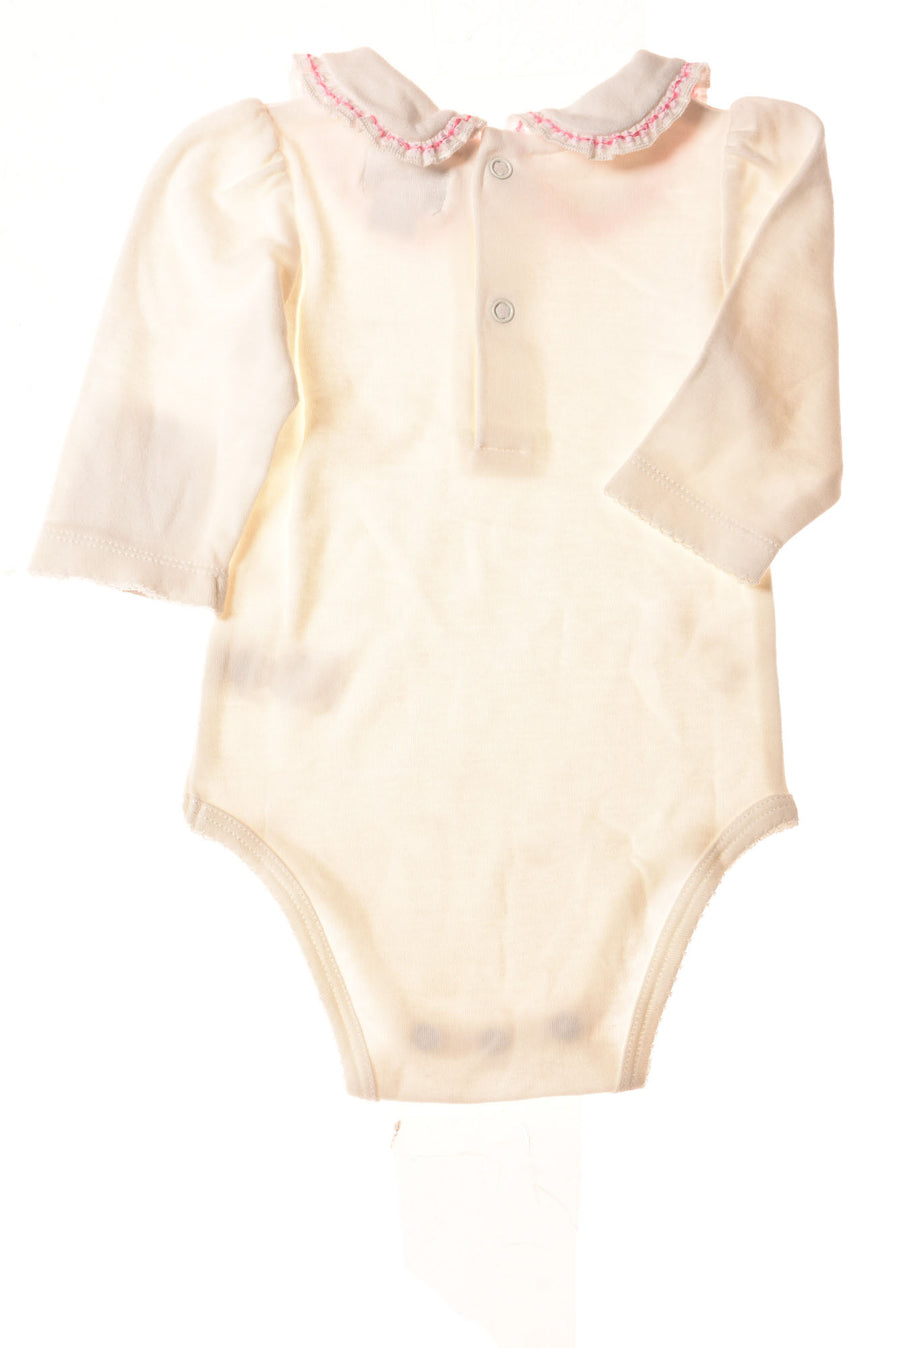 NEW Hartstrings Baby Baby Girl's Top 3-6 Months White